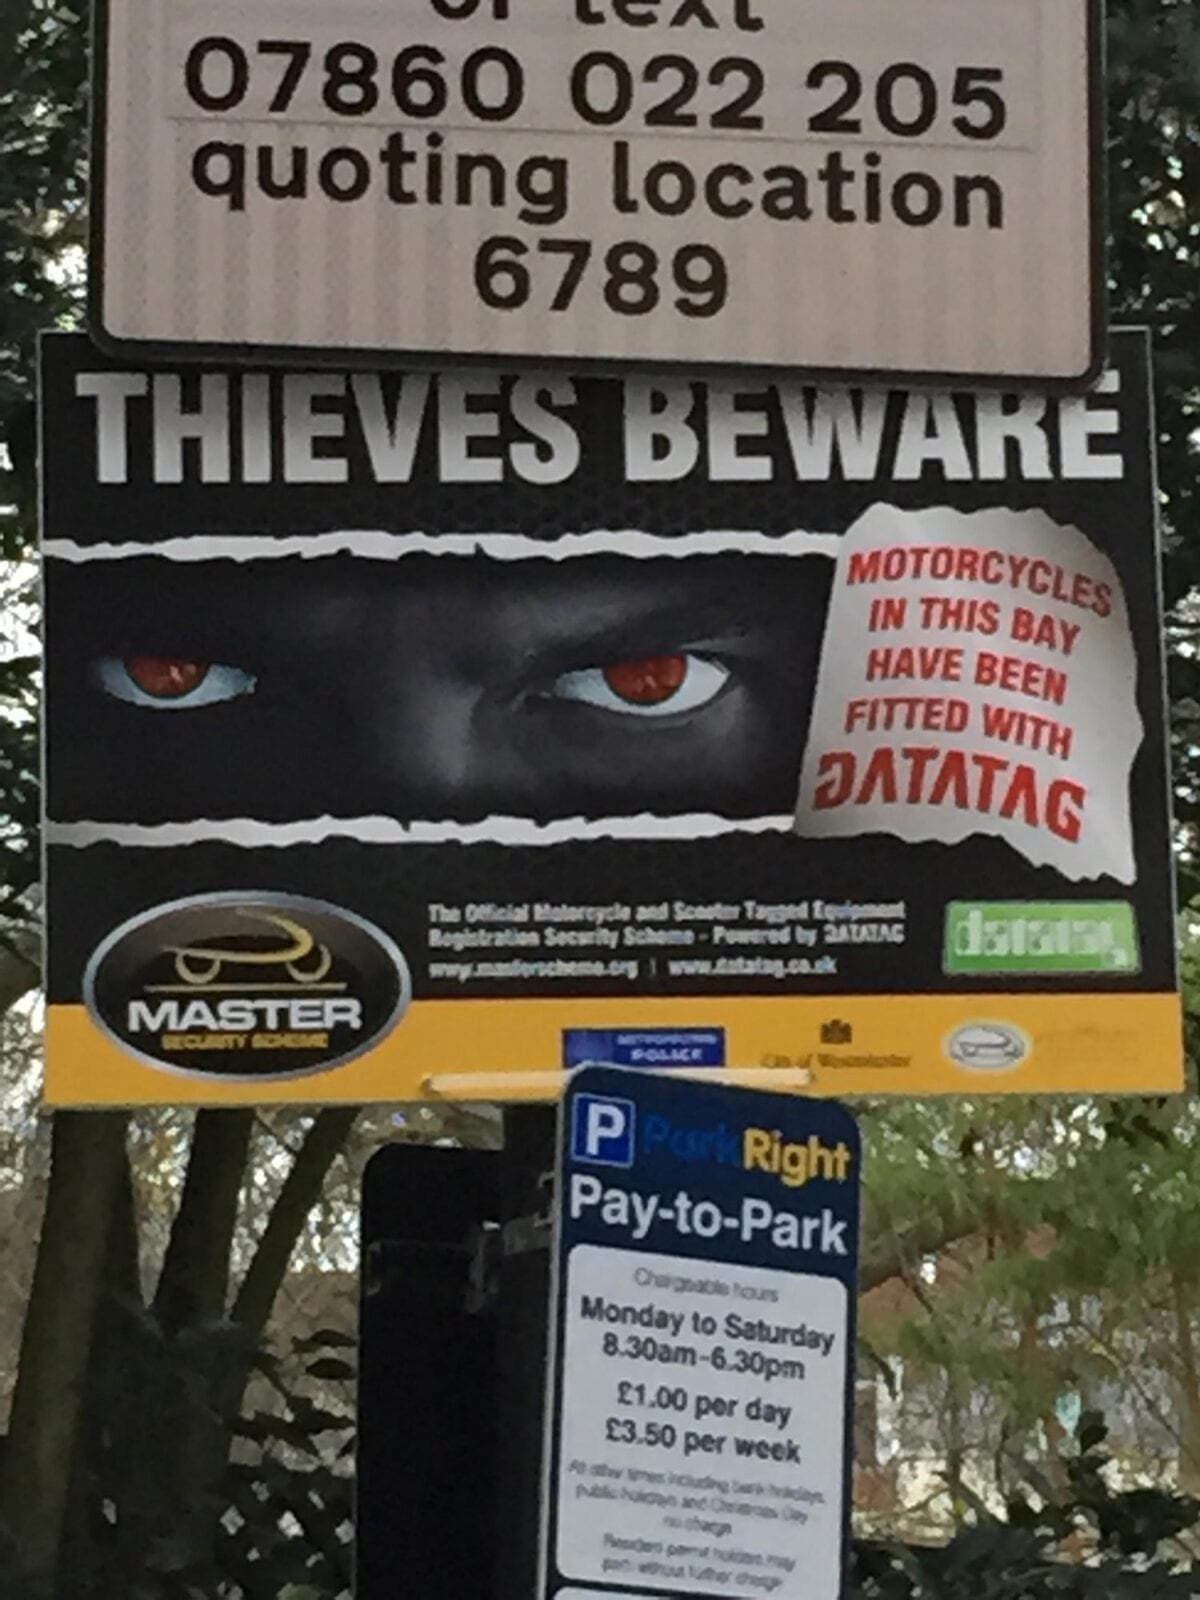 Close-up-of-'Thieves-Beware'-sign-in-St-James's-Square-London